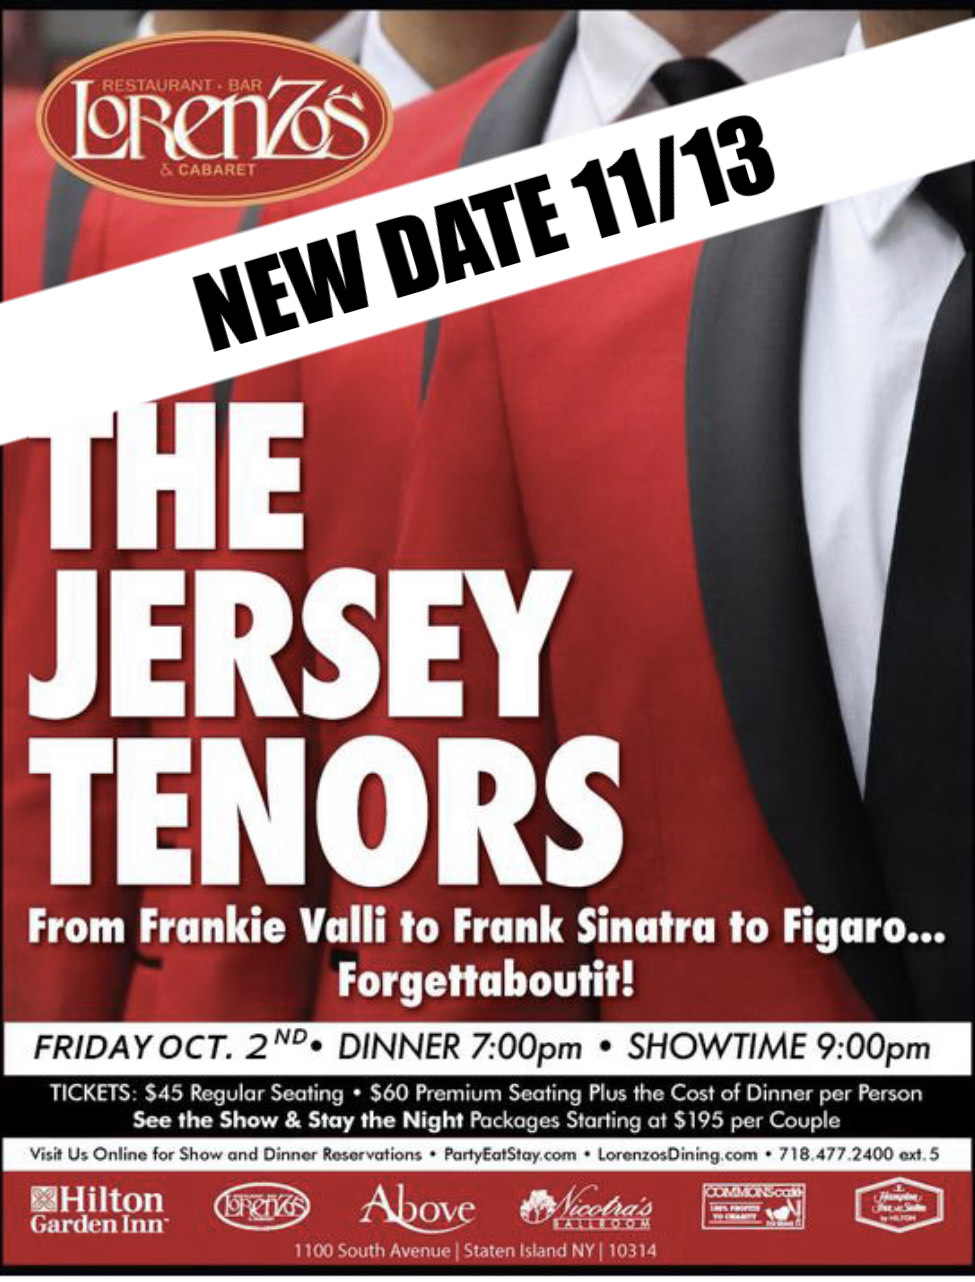 The Jersey Tenors